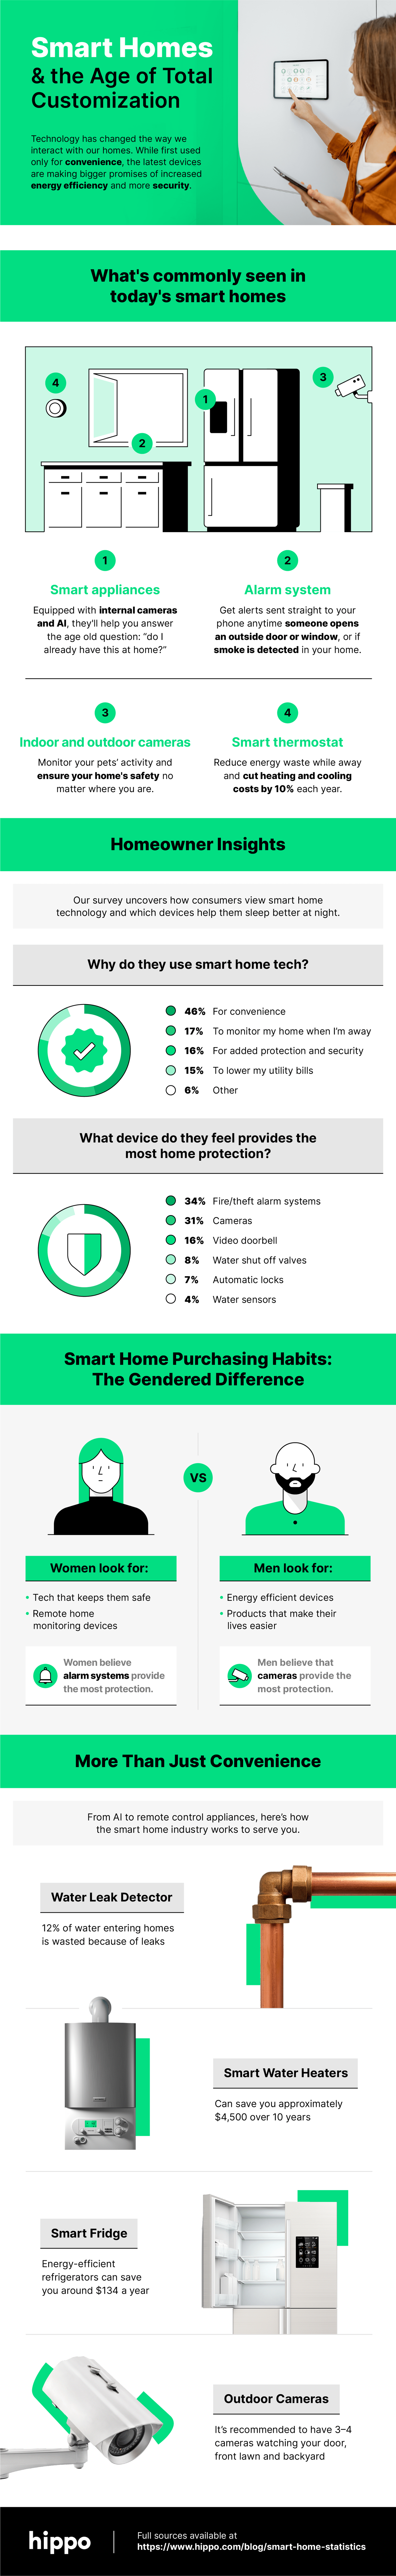 Smart Home Statistics Infographic